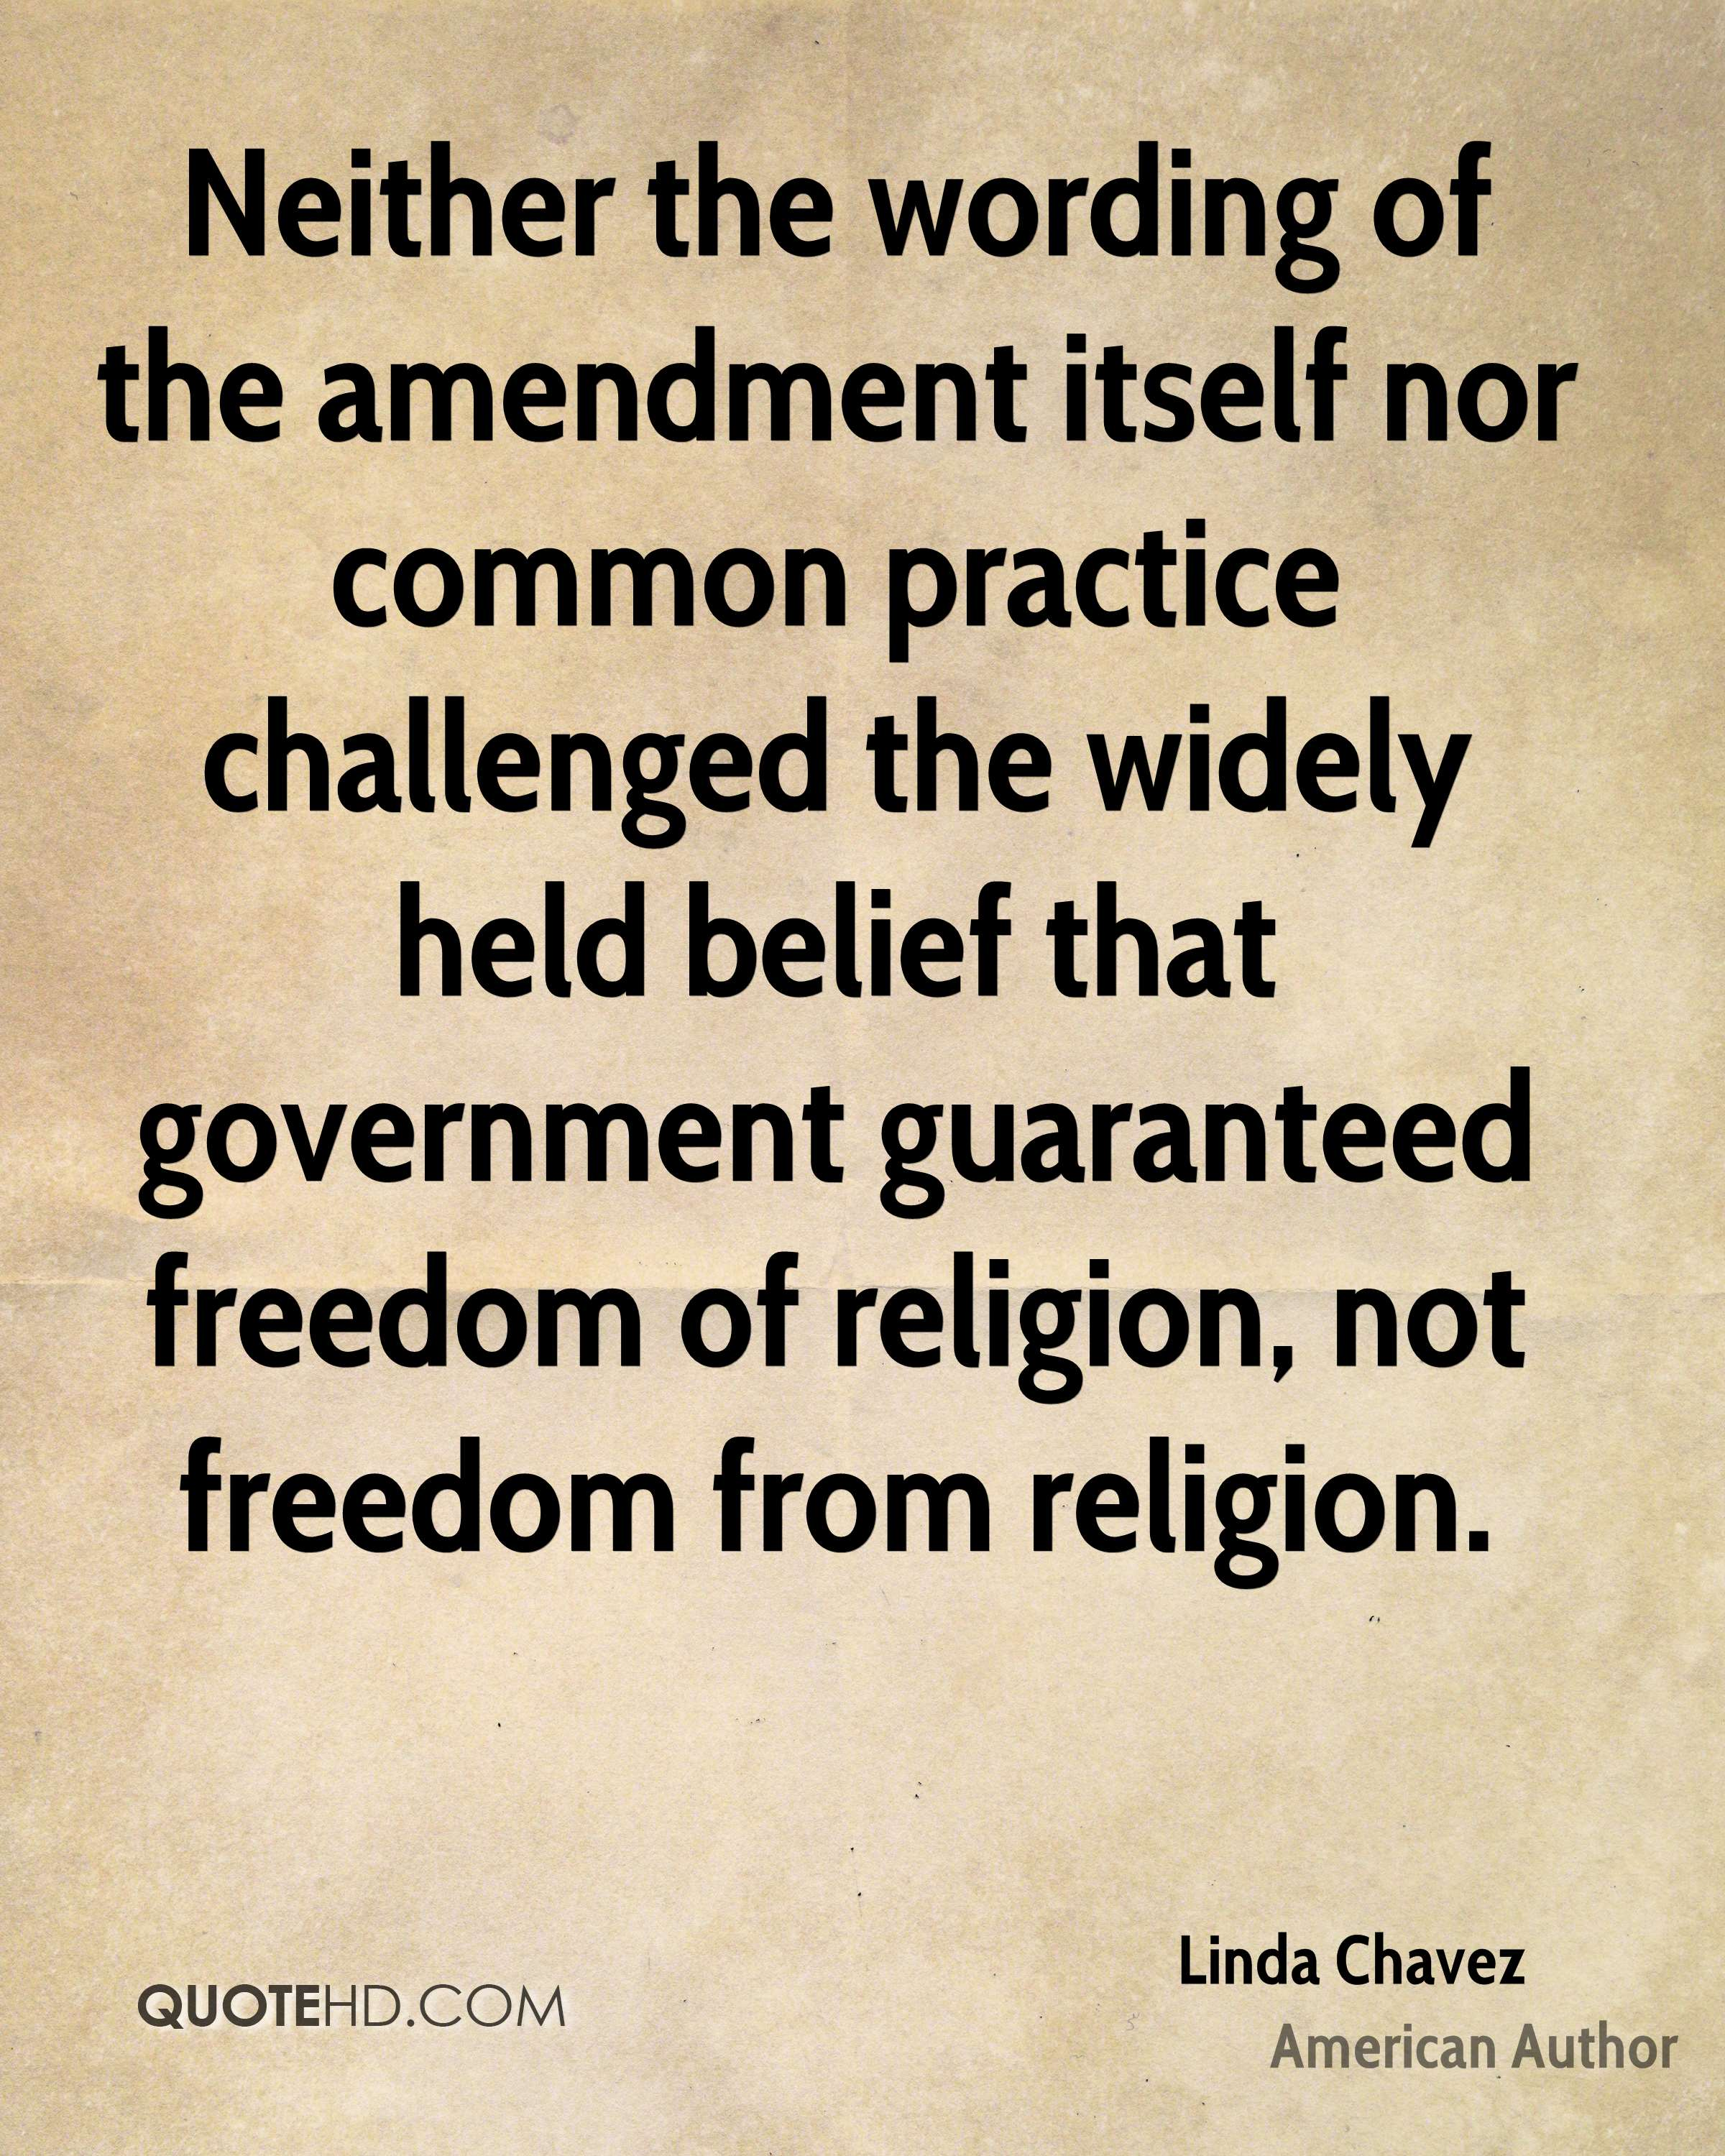 Neither the wording of the amendment itself nor common practice challenged the widely held belief that government guaranteed freedom of religion, not freedom from religion.